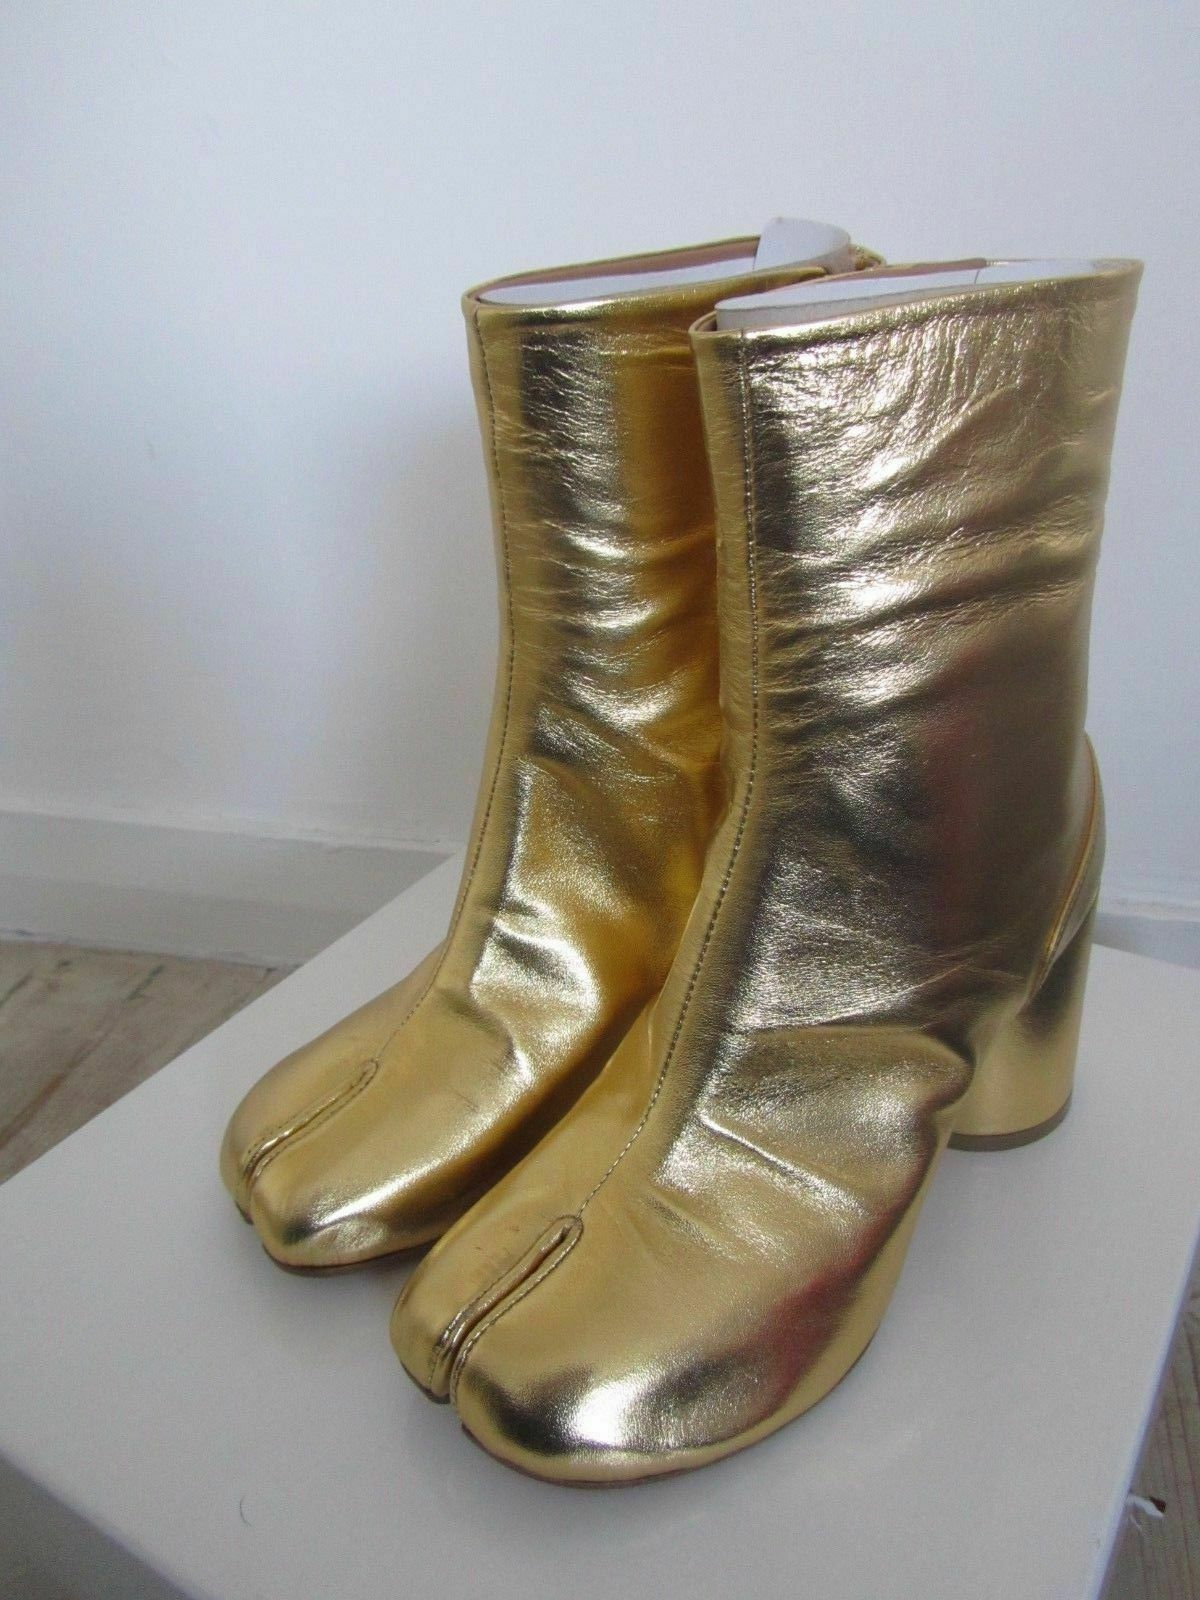 New Stiefel Maison Martin Margiela Gold Leather Tabi Toe Stiefel New - 35, Last Pair 829e0d